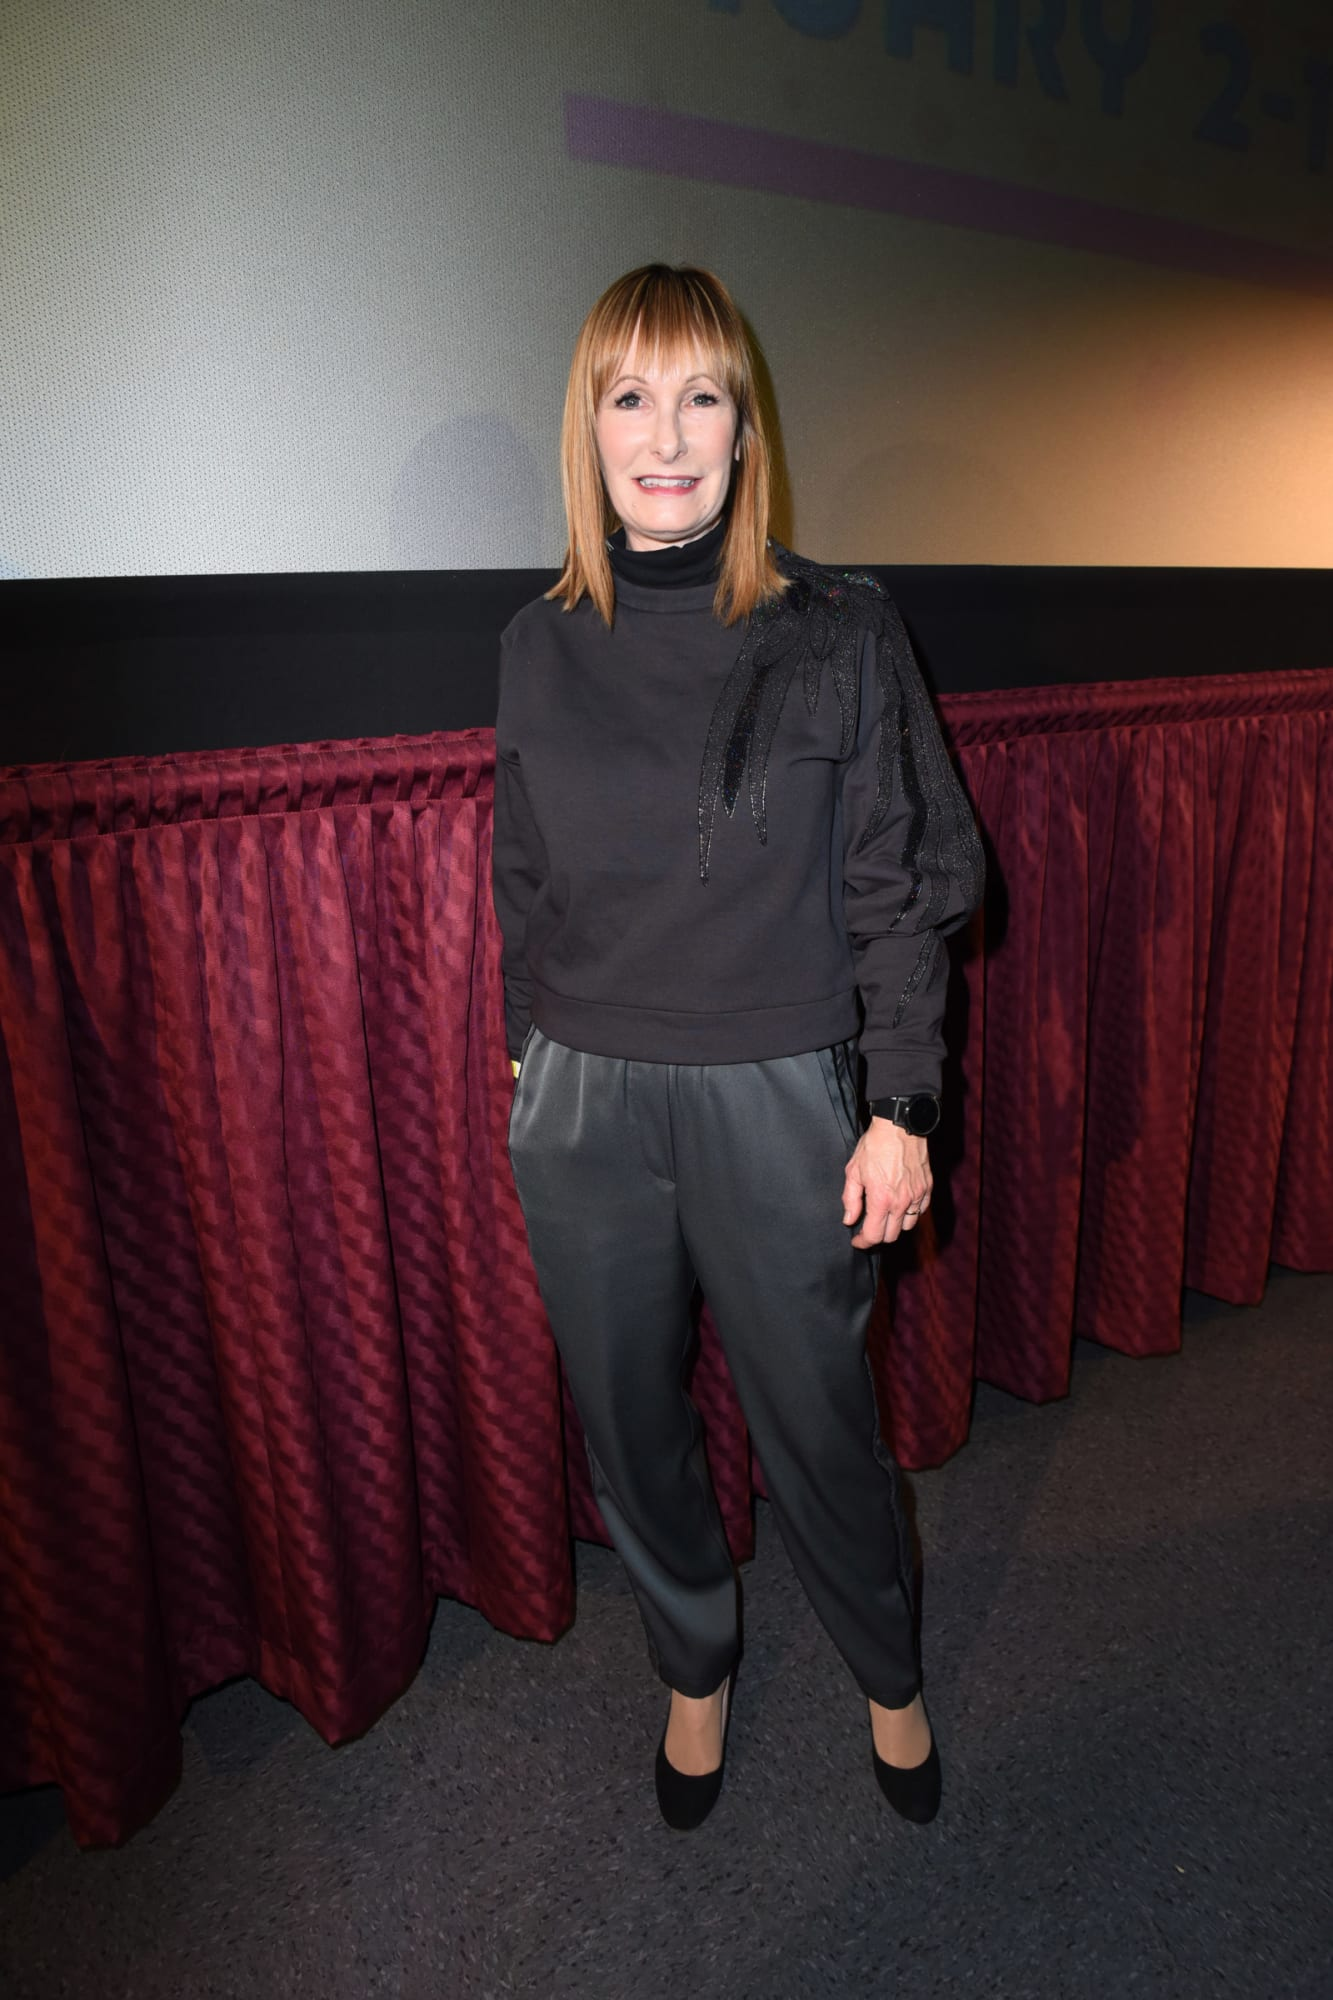 Gale Anne Hurd will be honored at Locarno Film Festival